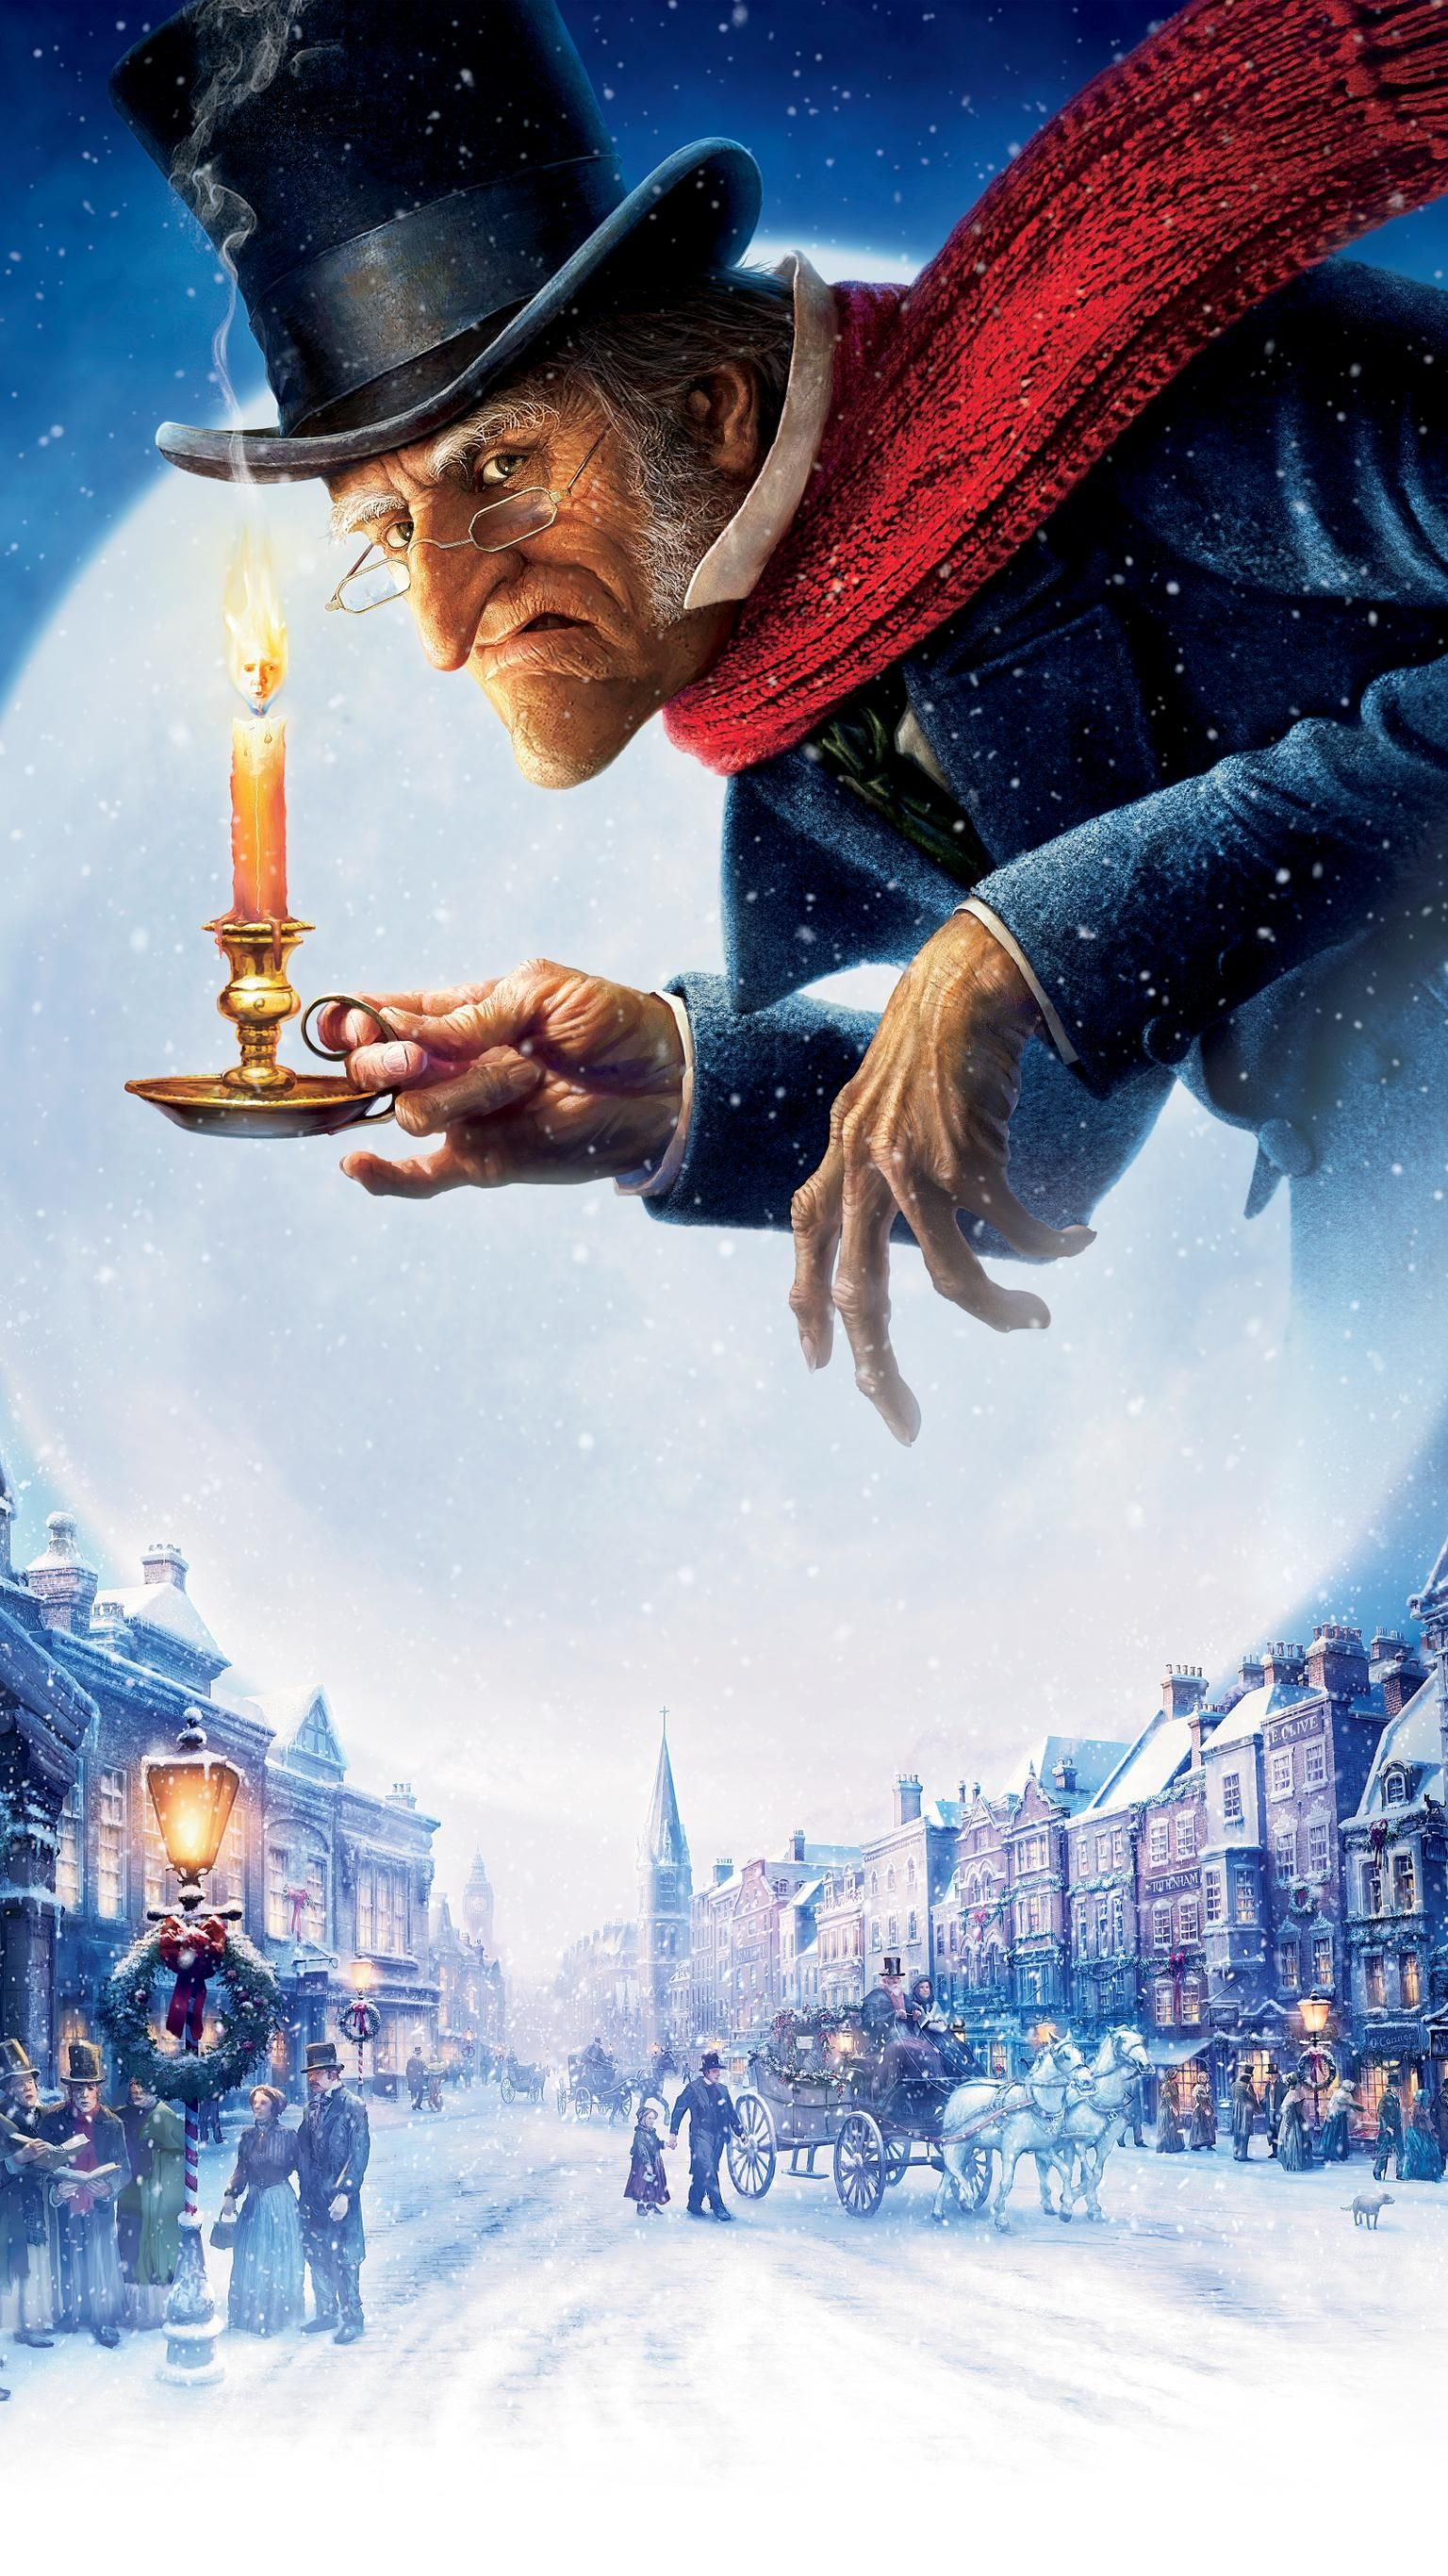 A Christmas Carol (2009) Phone Wallpaper (With images